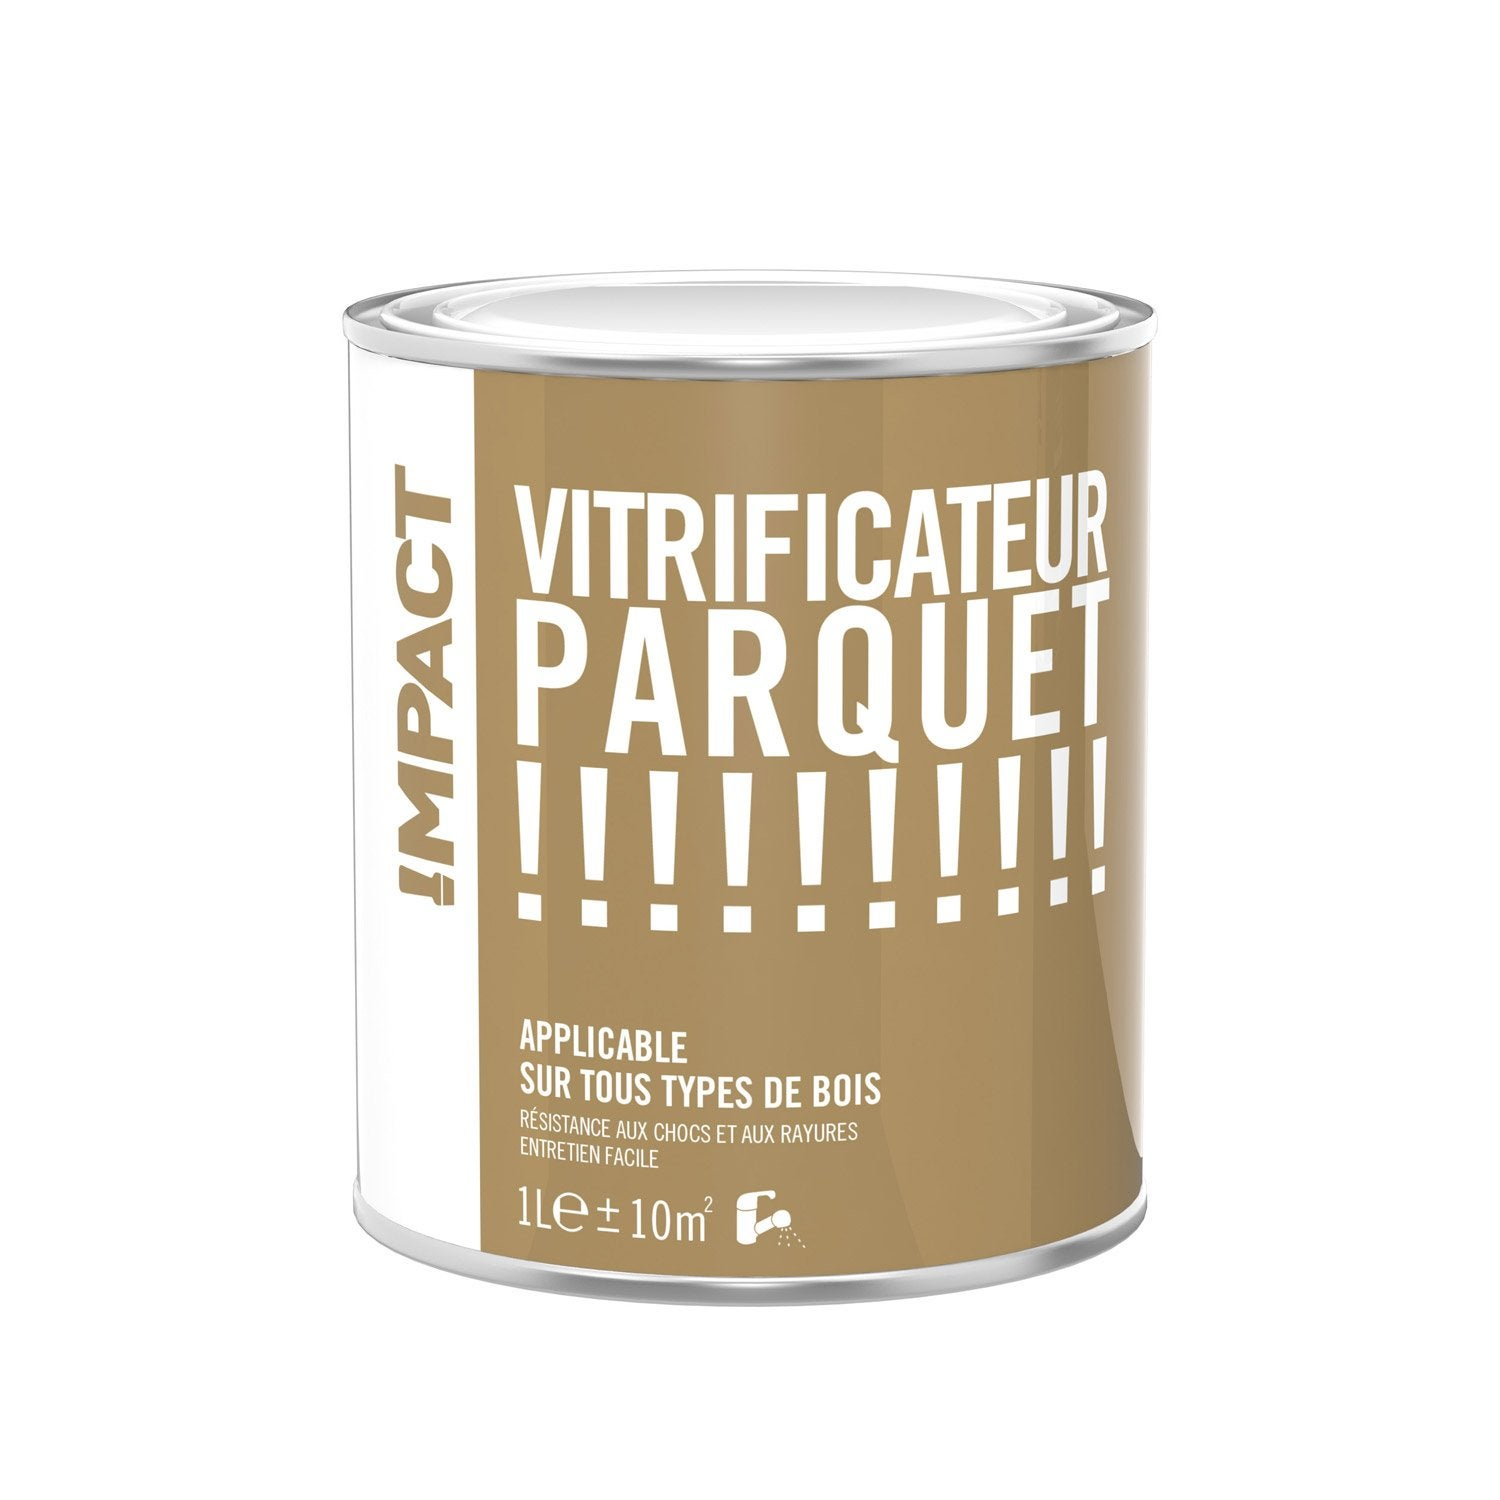 vitrificateur parquet impact incolore 1 l leroy merlin. Black Bedroom Furniture Sets. Home Design Ideas